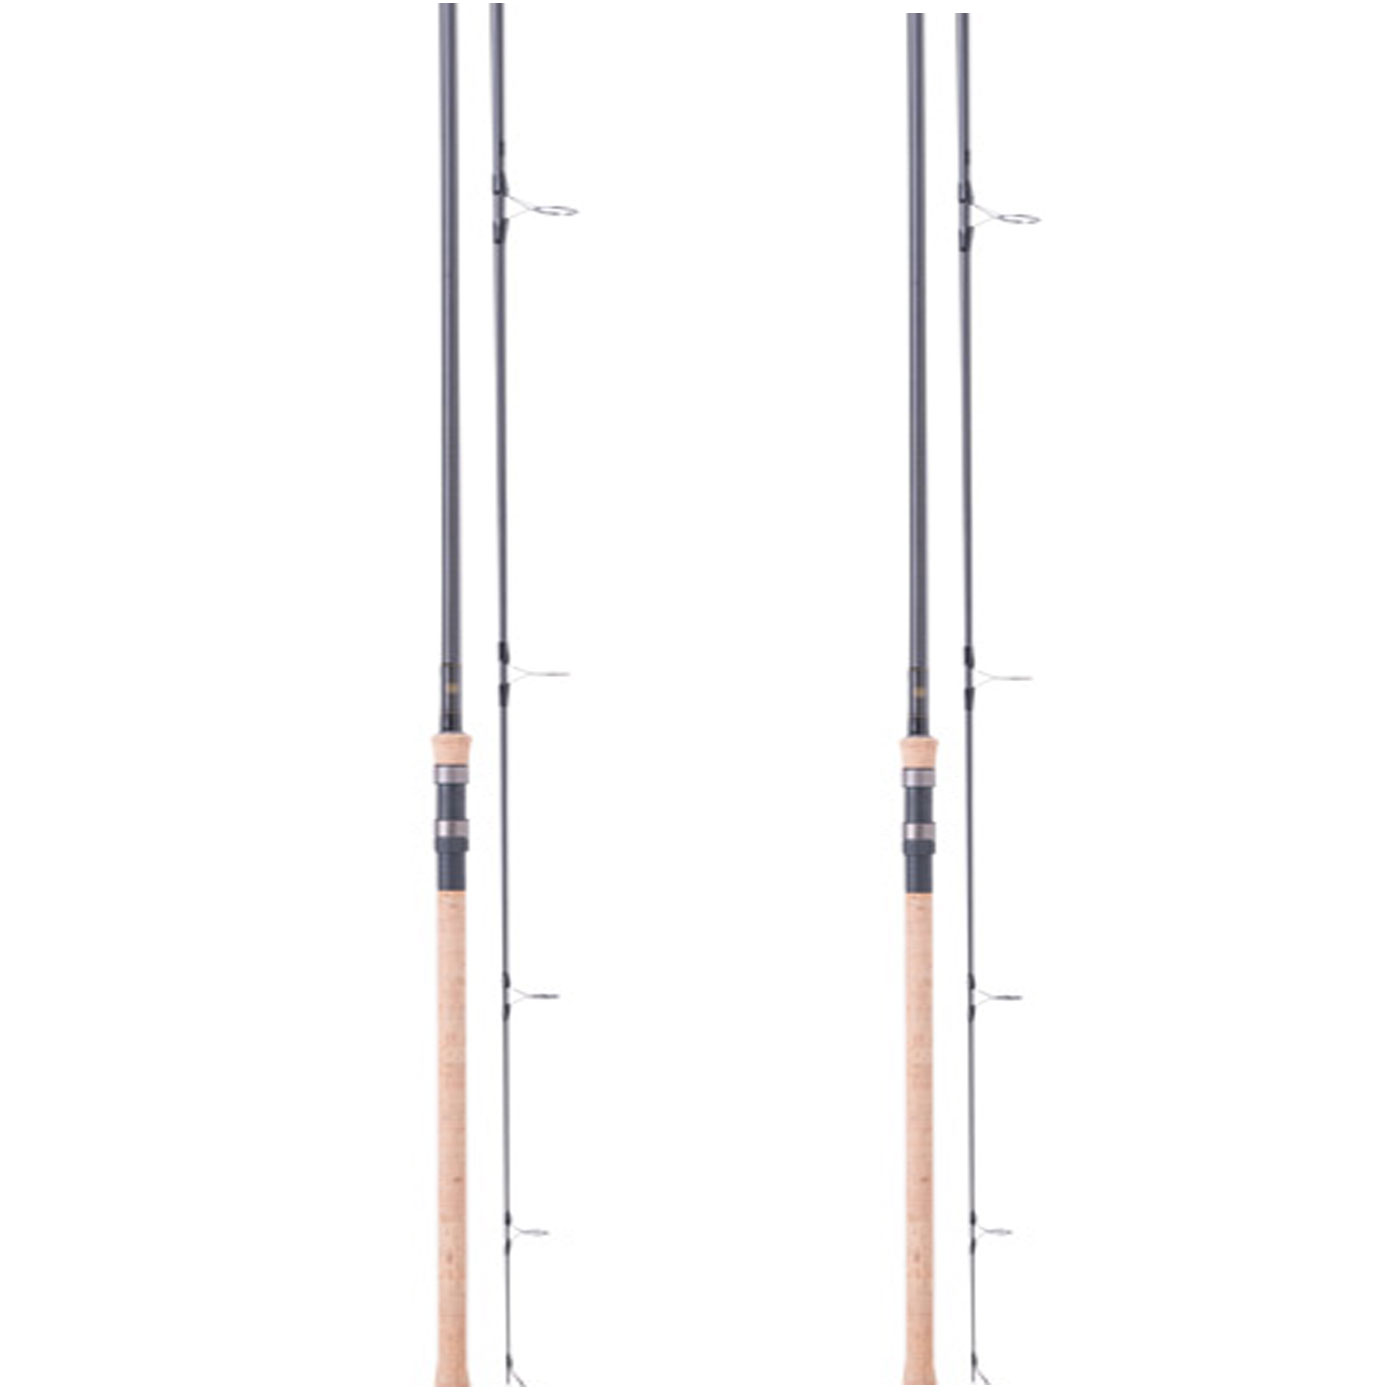 Wychwood Extremis FC 12ft 3.25lb T.C Cork Handle Carp Rod -Set of 2-